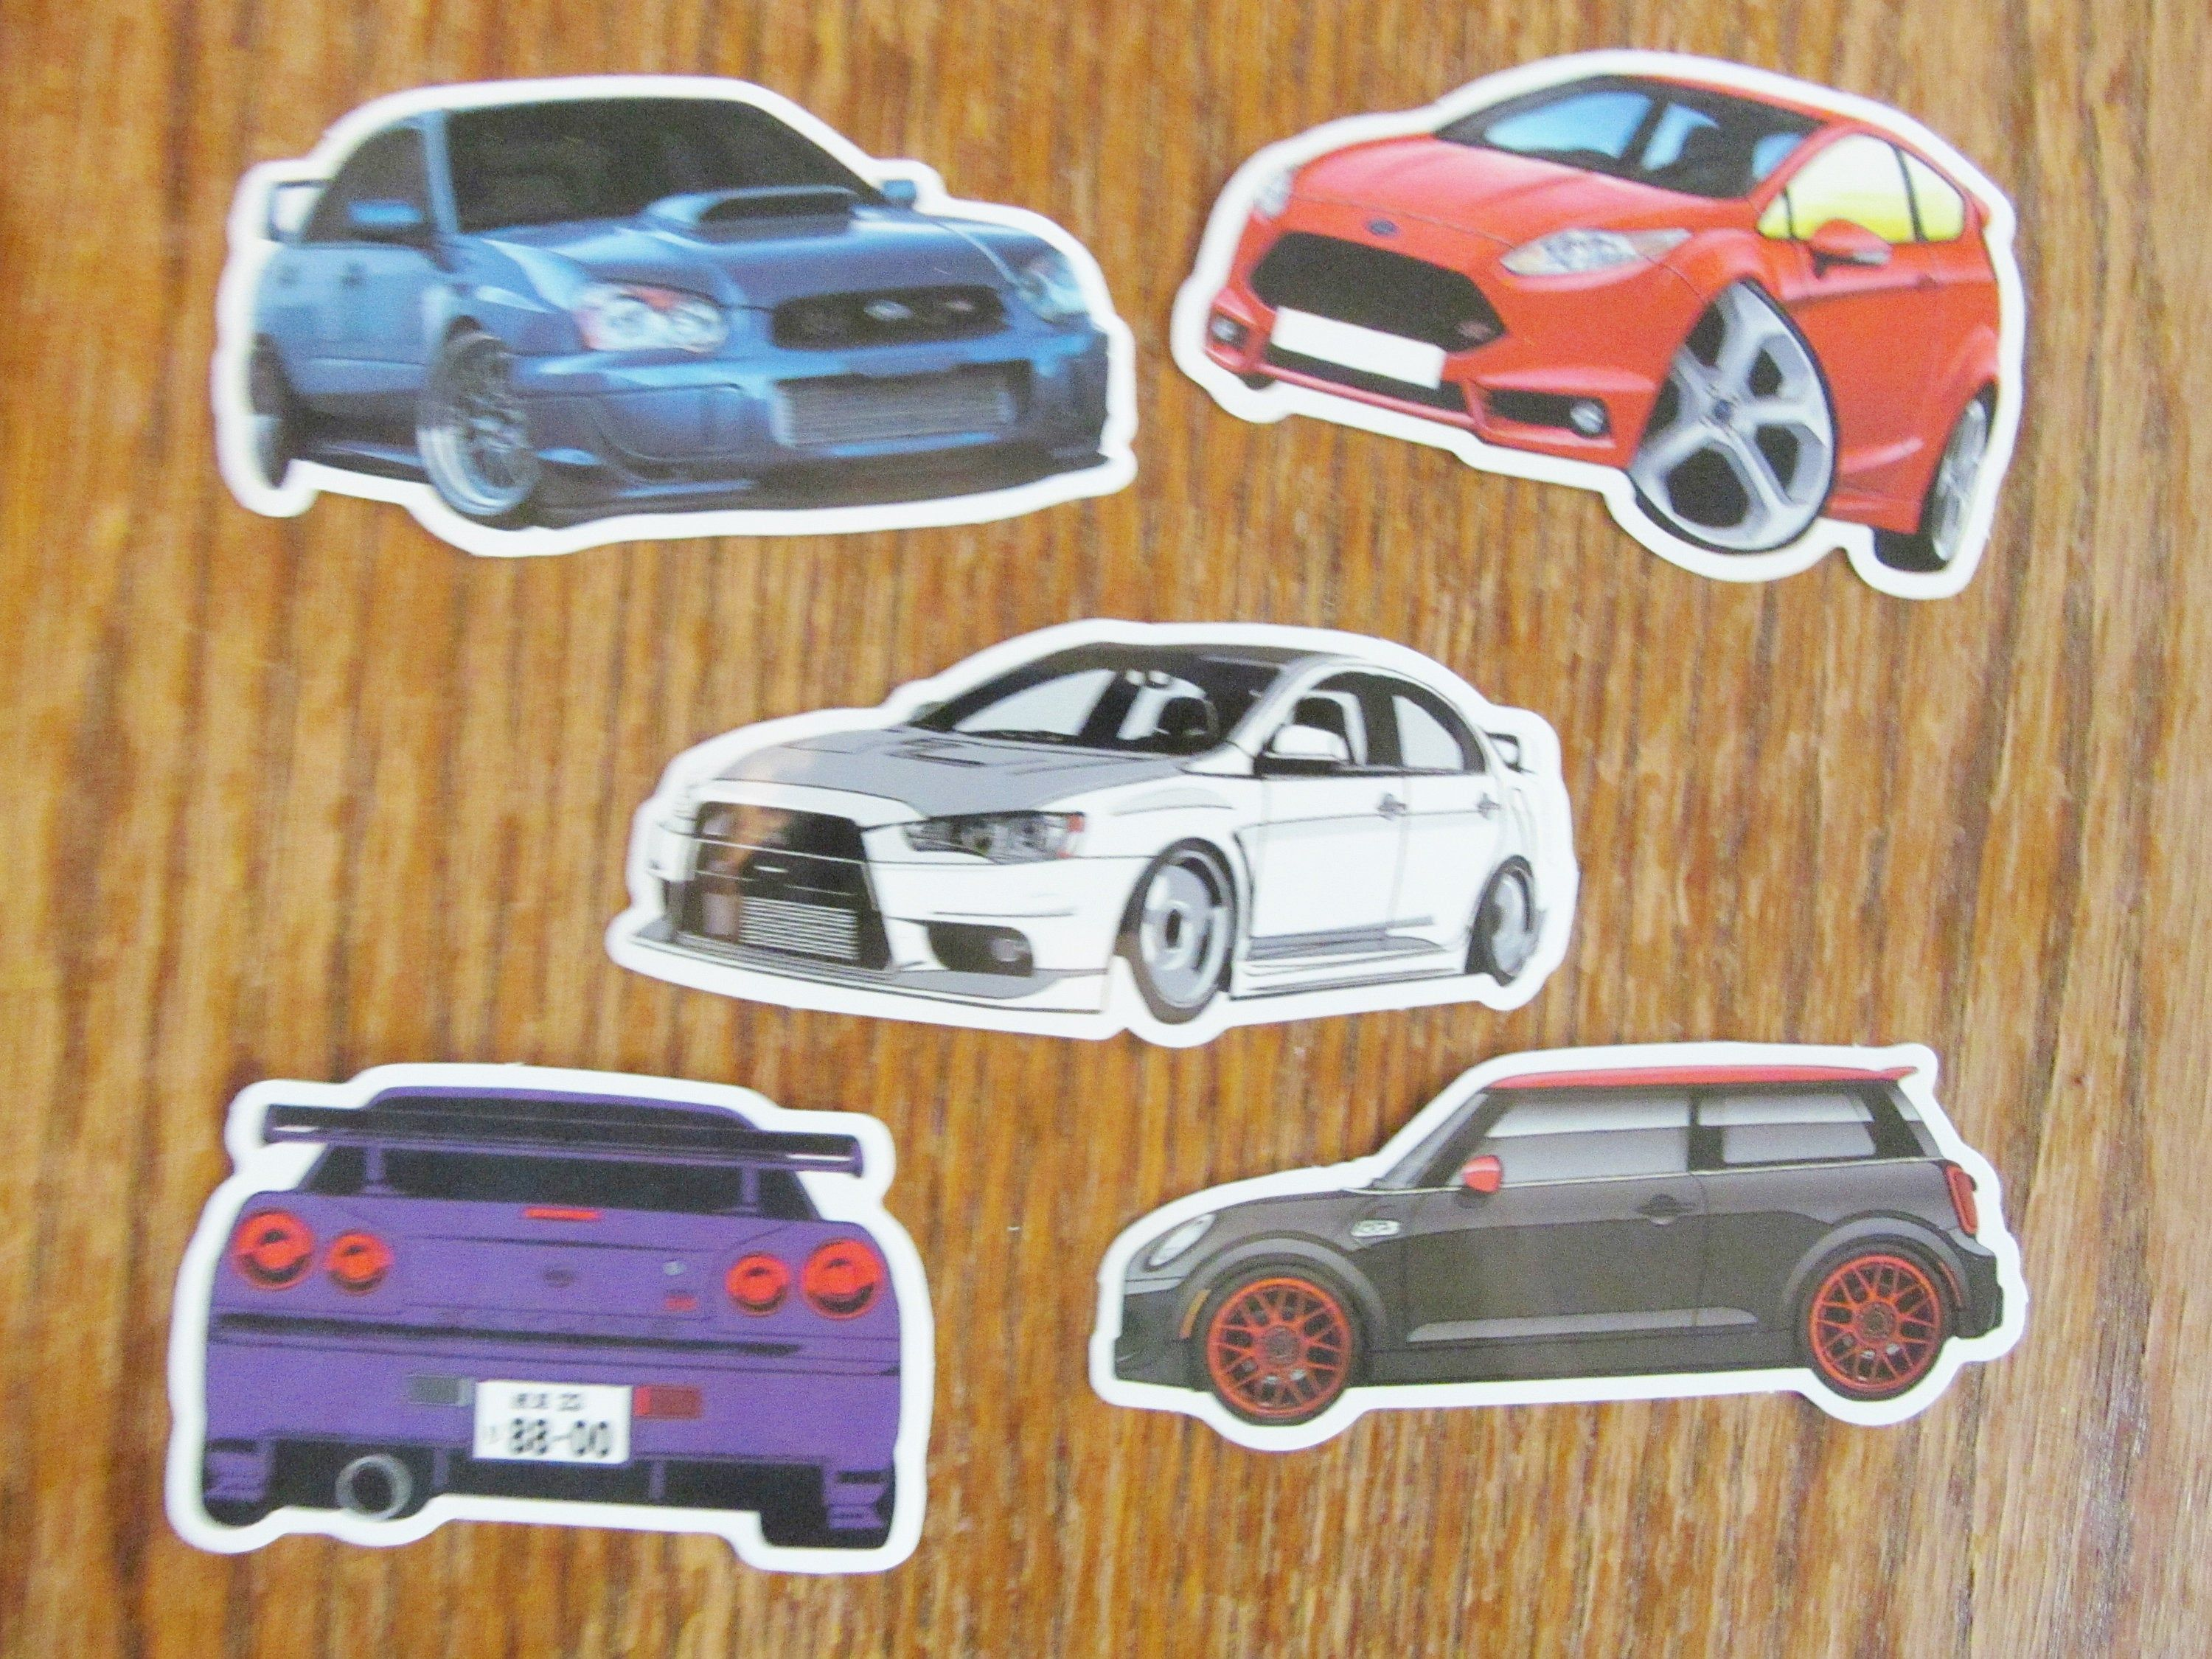 Sale Car Sticker Bundle Great For Your Laptop Hydroflask Cell Phone Etc Fast Free Shipping By Cellardeals On In 2021 Vinyl Car Stickers Car Stickers Toy Car [ 2250 x 3000 Pixel ]